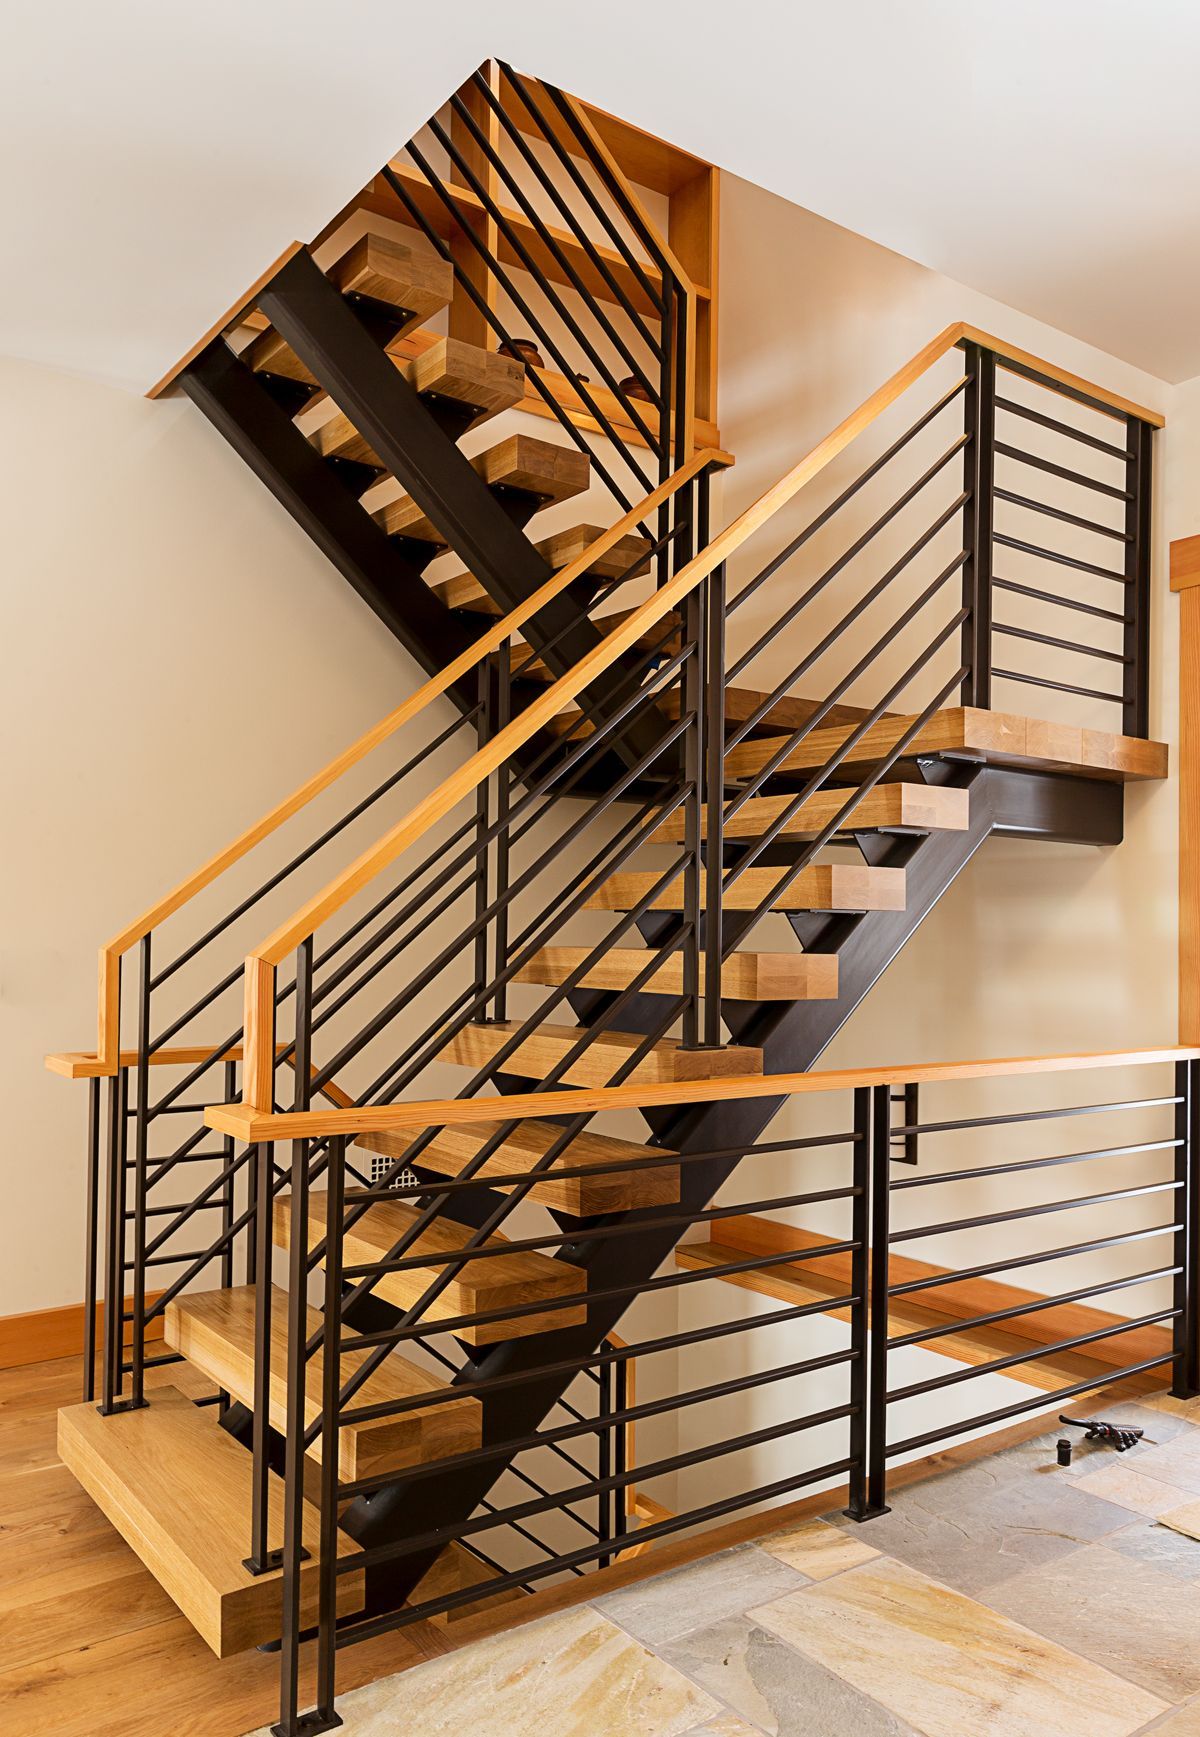 Rustic Modern Wood And Black Metal Staircase By Phinney Design Group Photo By Elizabeth Pedinotti Haynes Stair Railing Stair Railing Design Railing Design